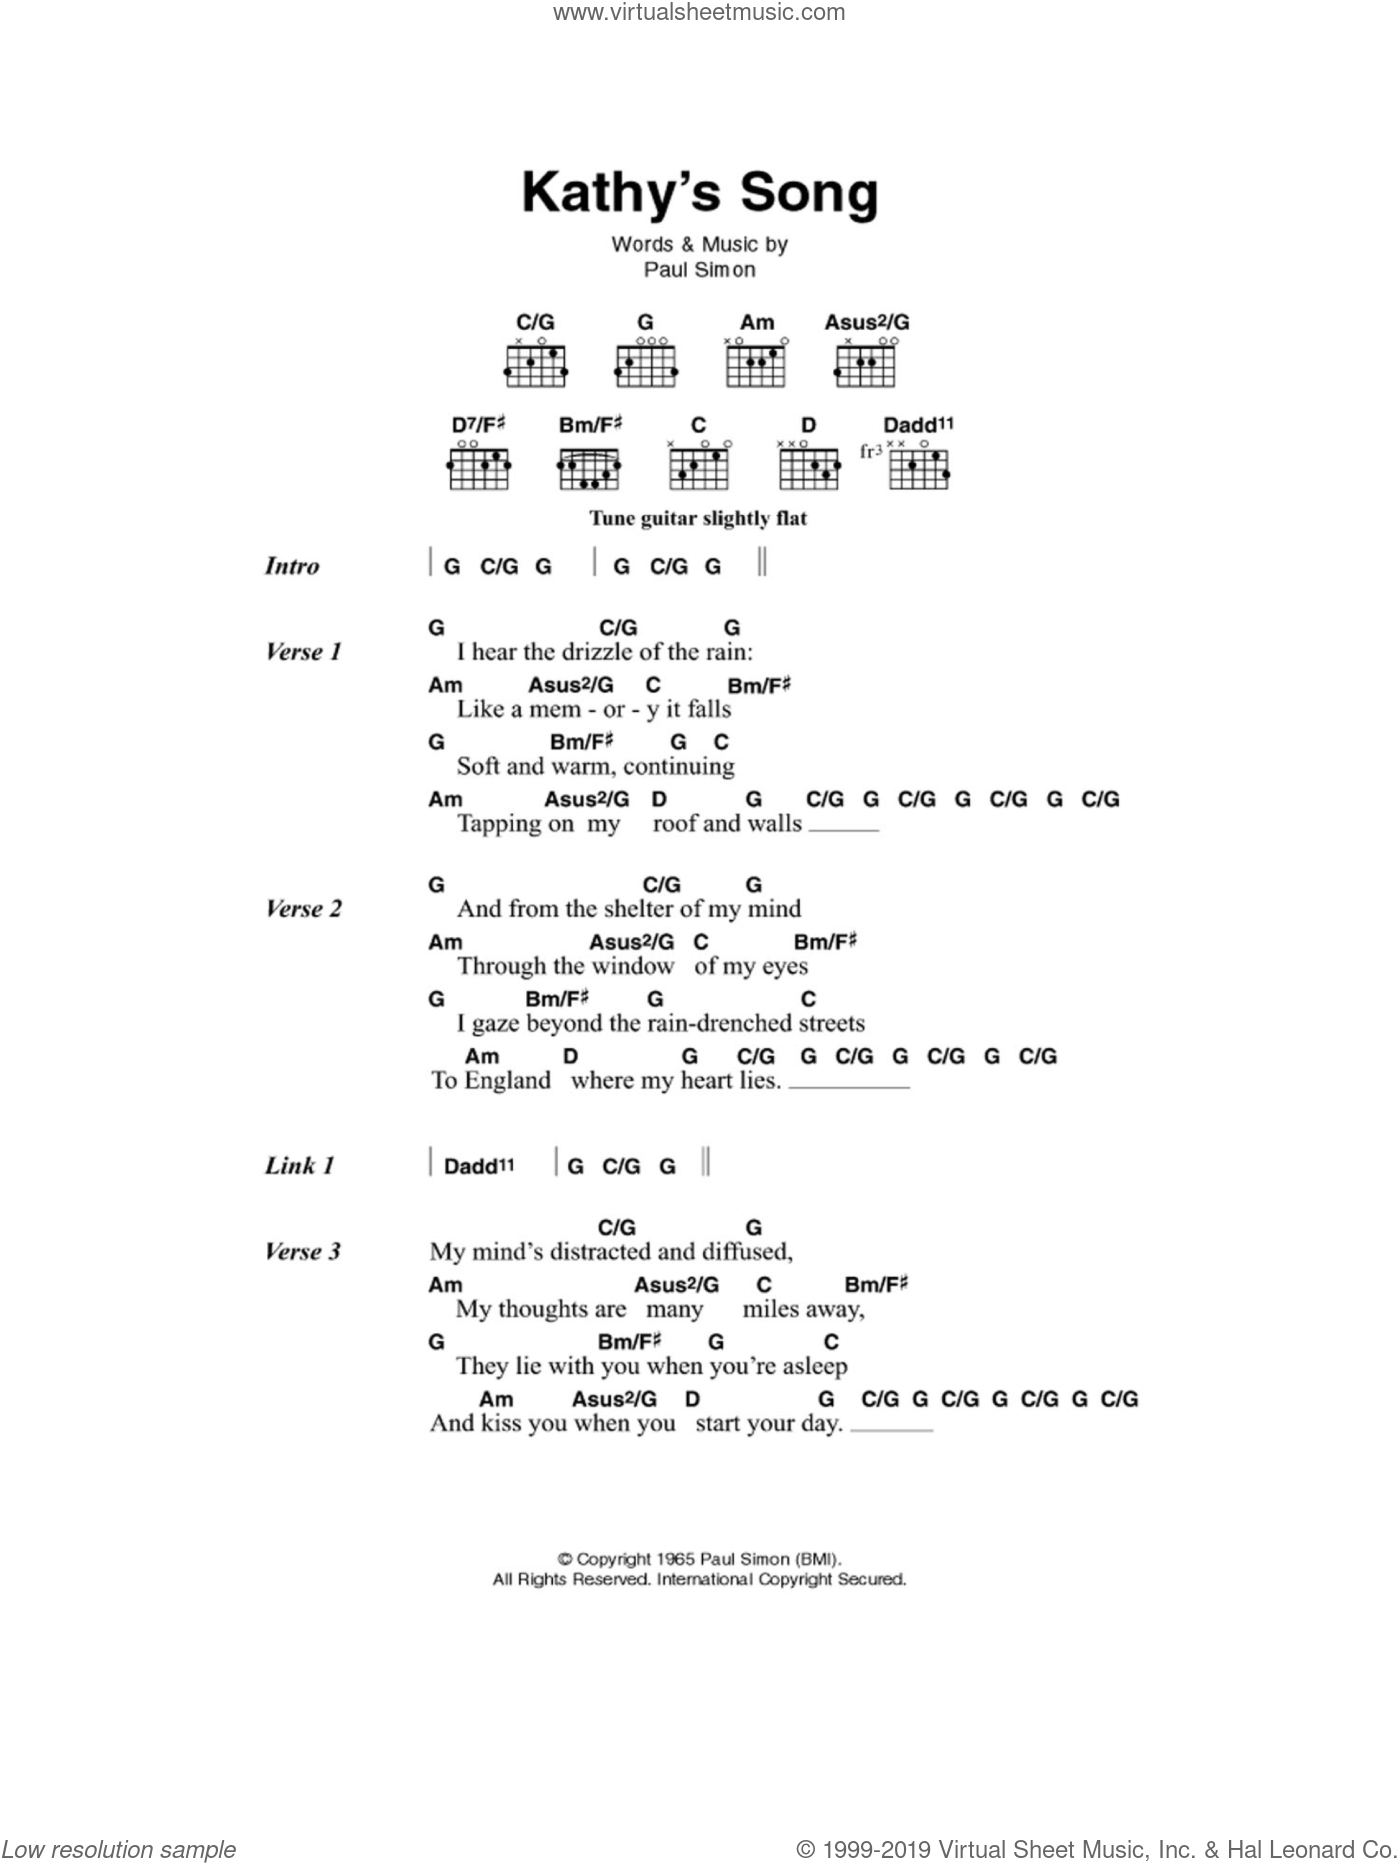 Garfunkel - Kathy\'s Song sheet music for guitar (chords) [PDF]